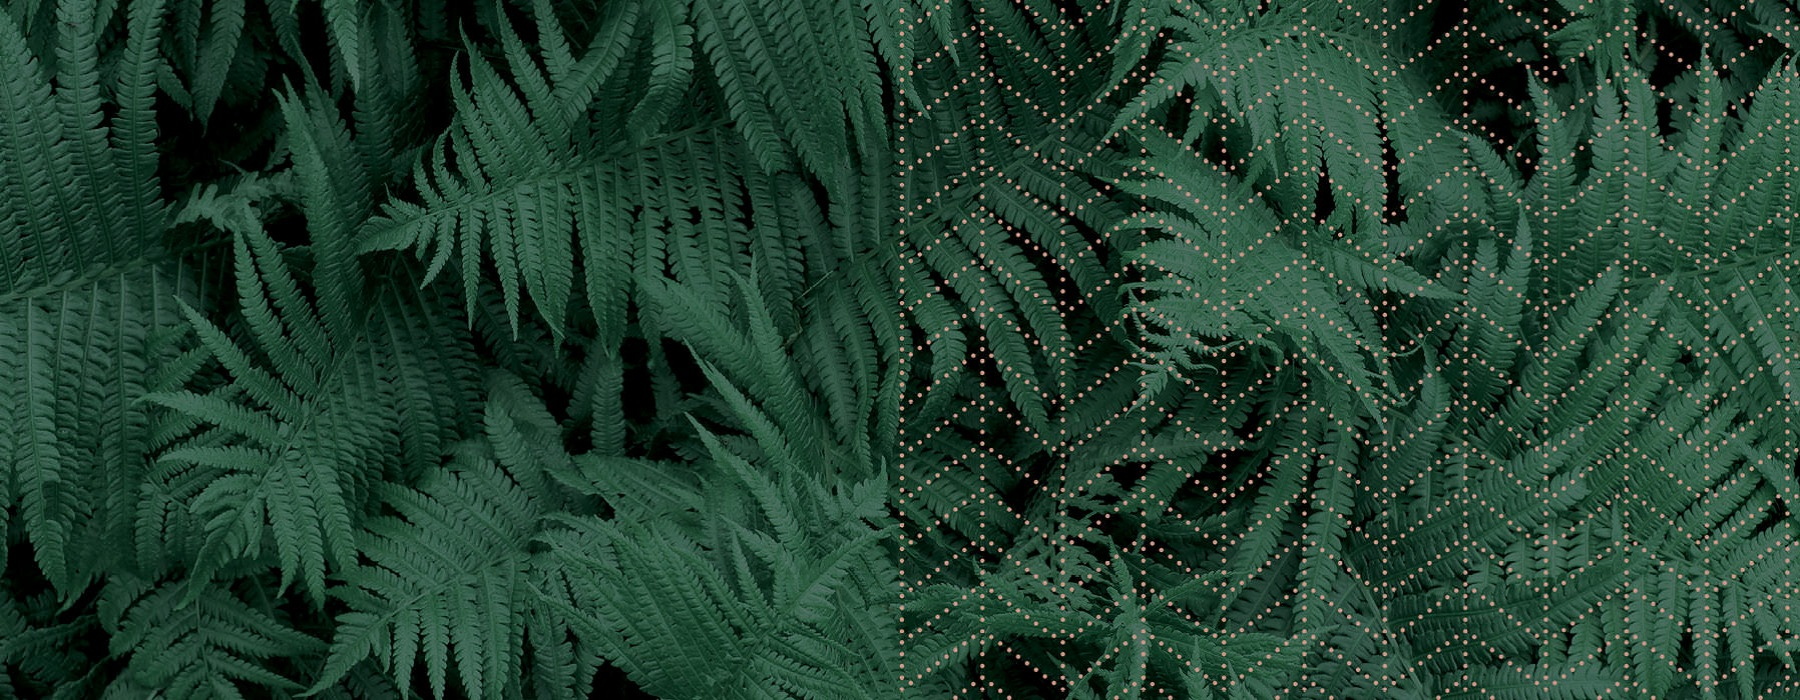 close up of ferns with pattern overlay